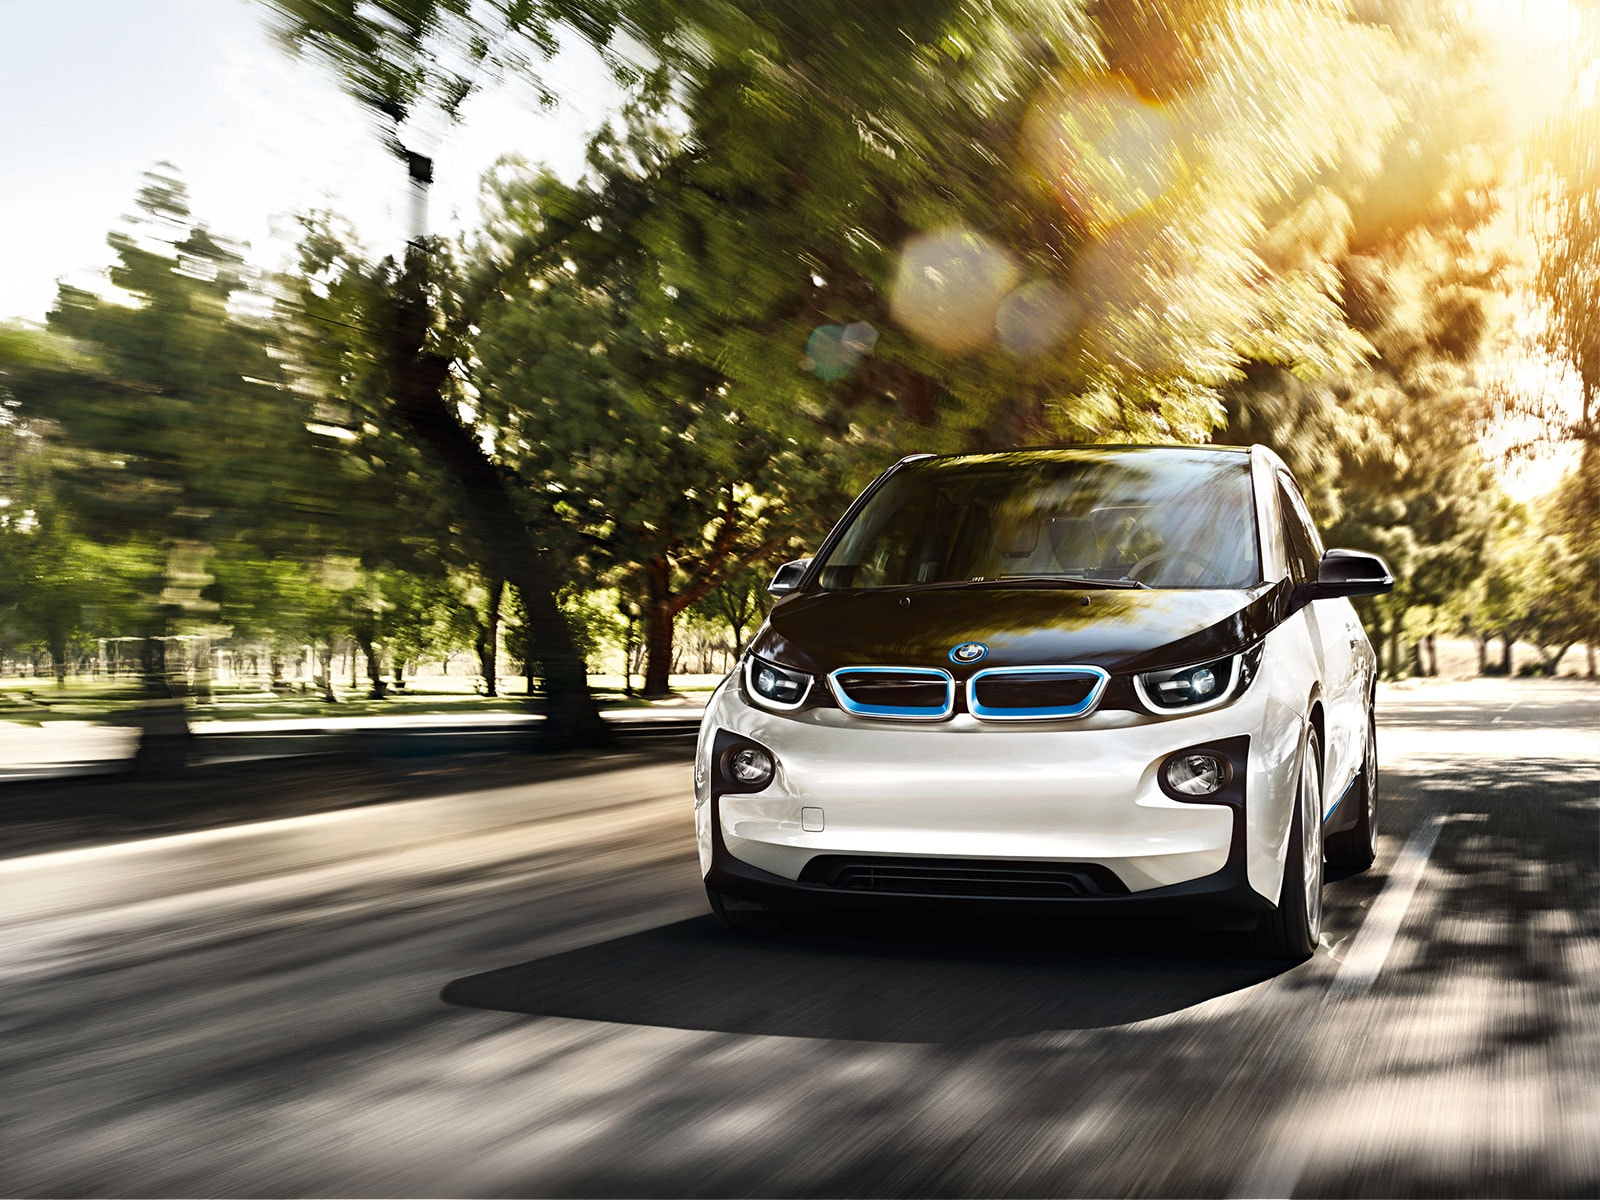 Bmw I3 St Louis Mo Autohaus Bmw The Electric Future Is Here